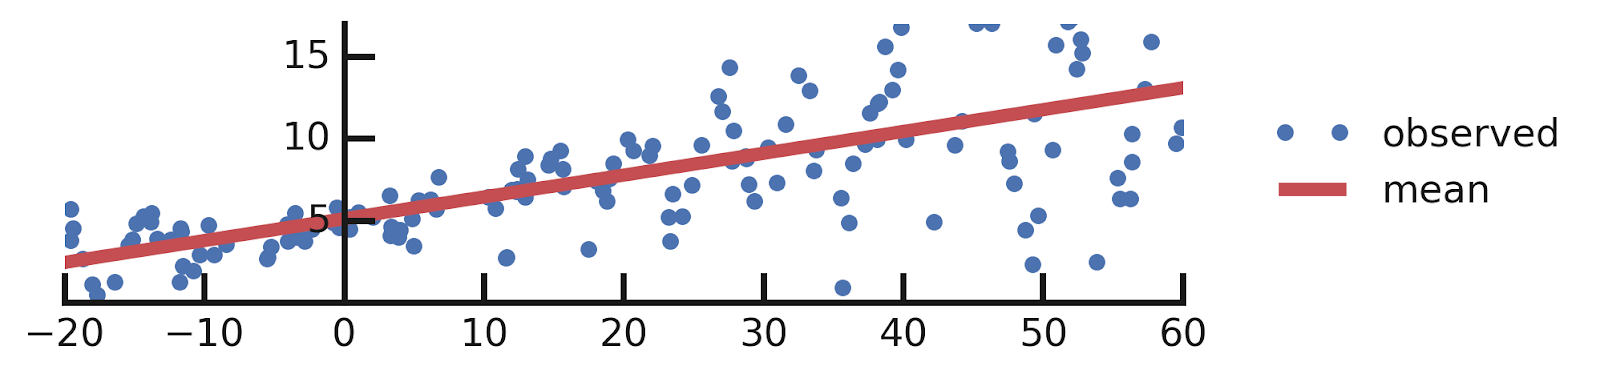 the overall trend of the data (blue circles) with the predicted mean of the distribution over labels